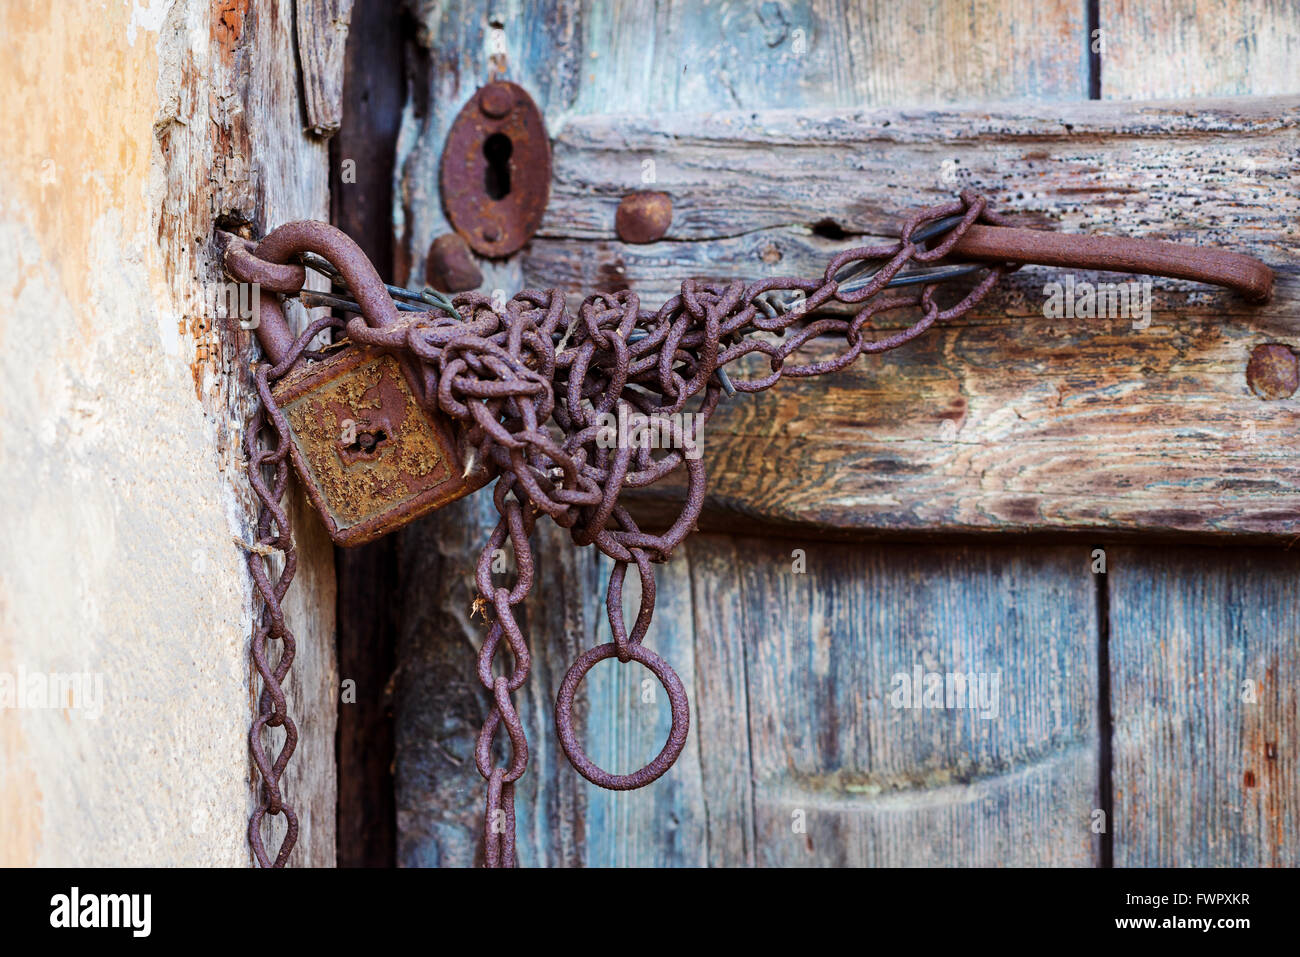 Rusty Door rusty door lock and chain on an old door stock photo, royalty free